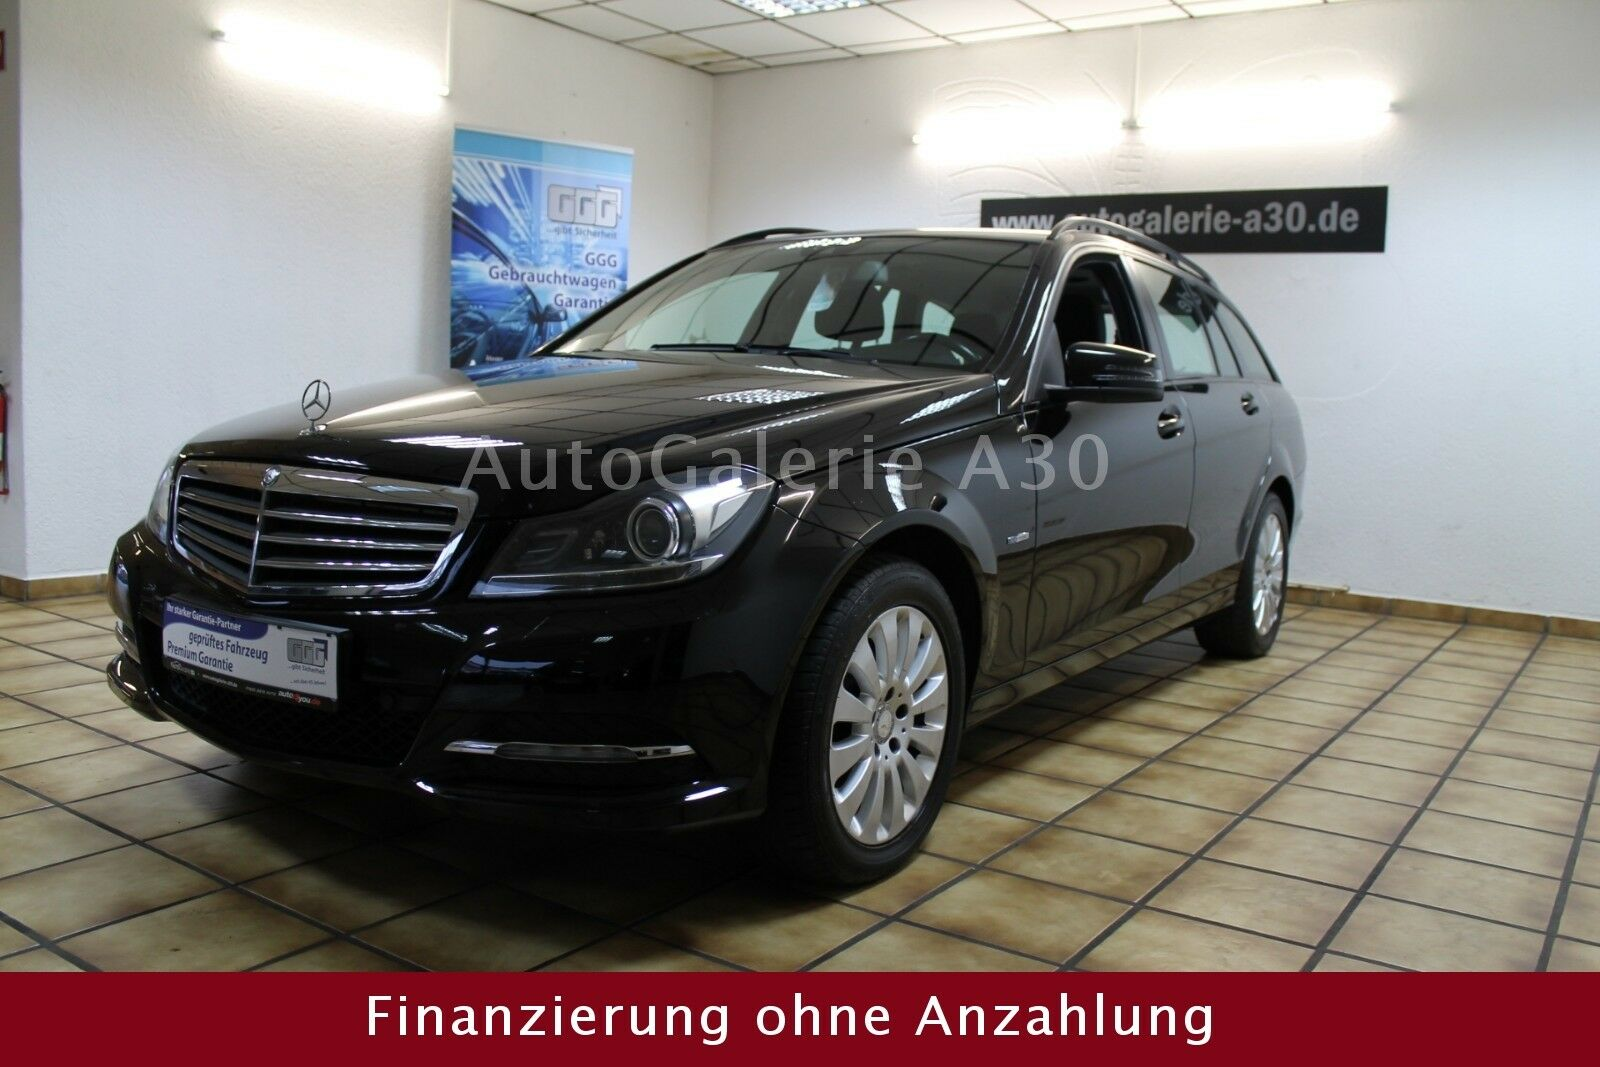 MERCEDES-BENZ C 200 T CDI BlueEfficiency Navi Bi-Xenon Klima